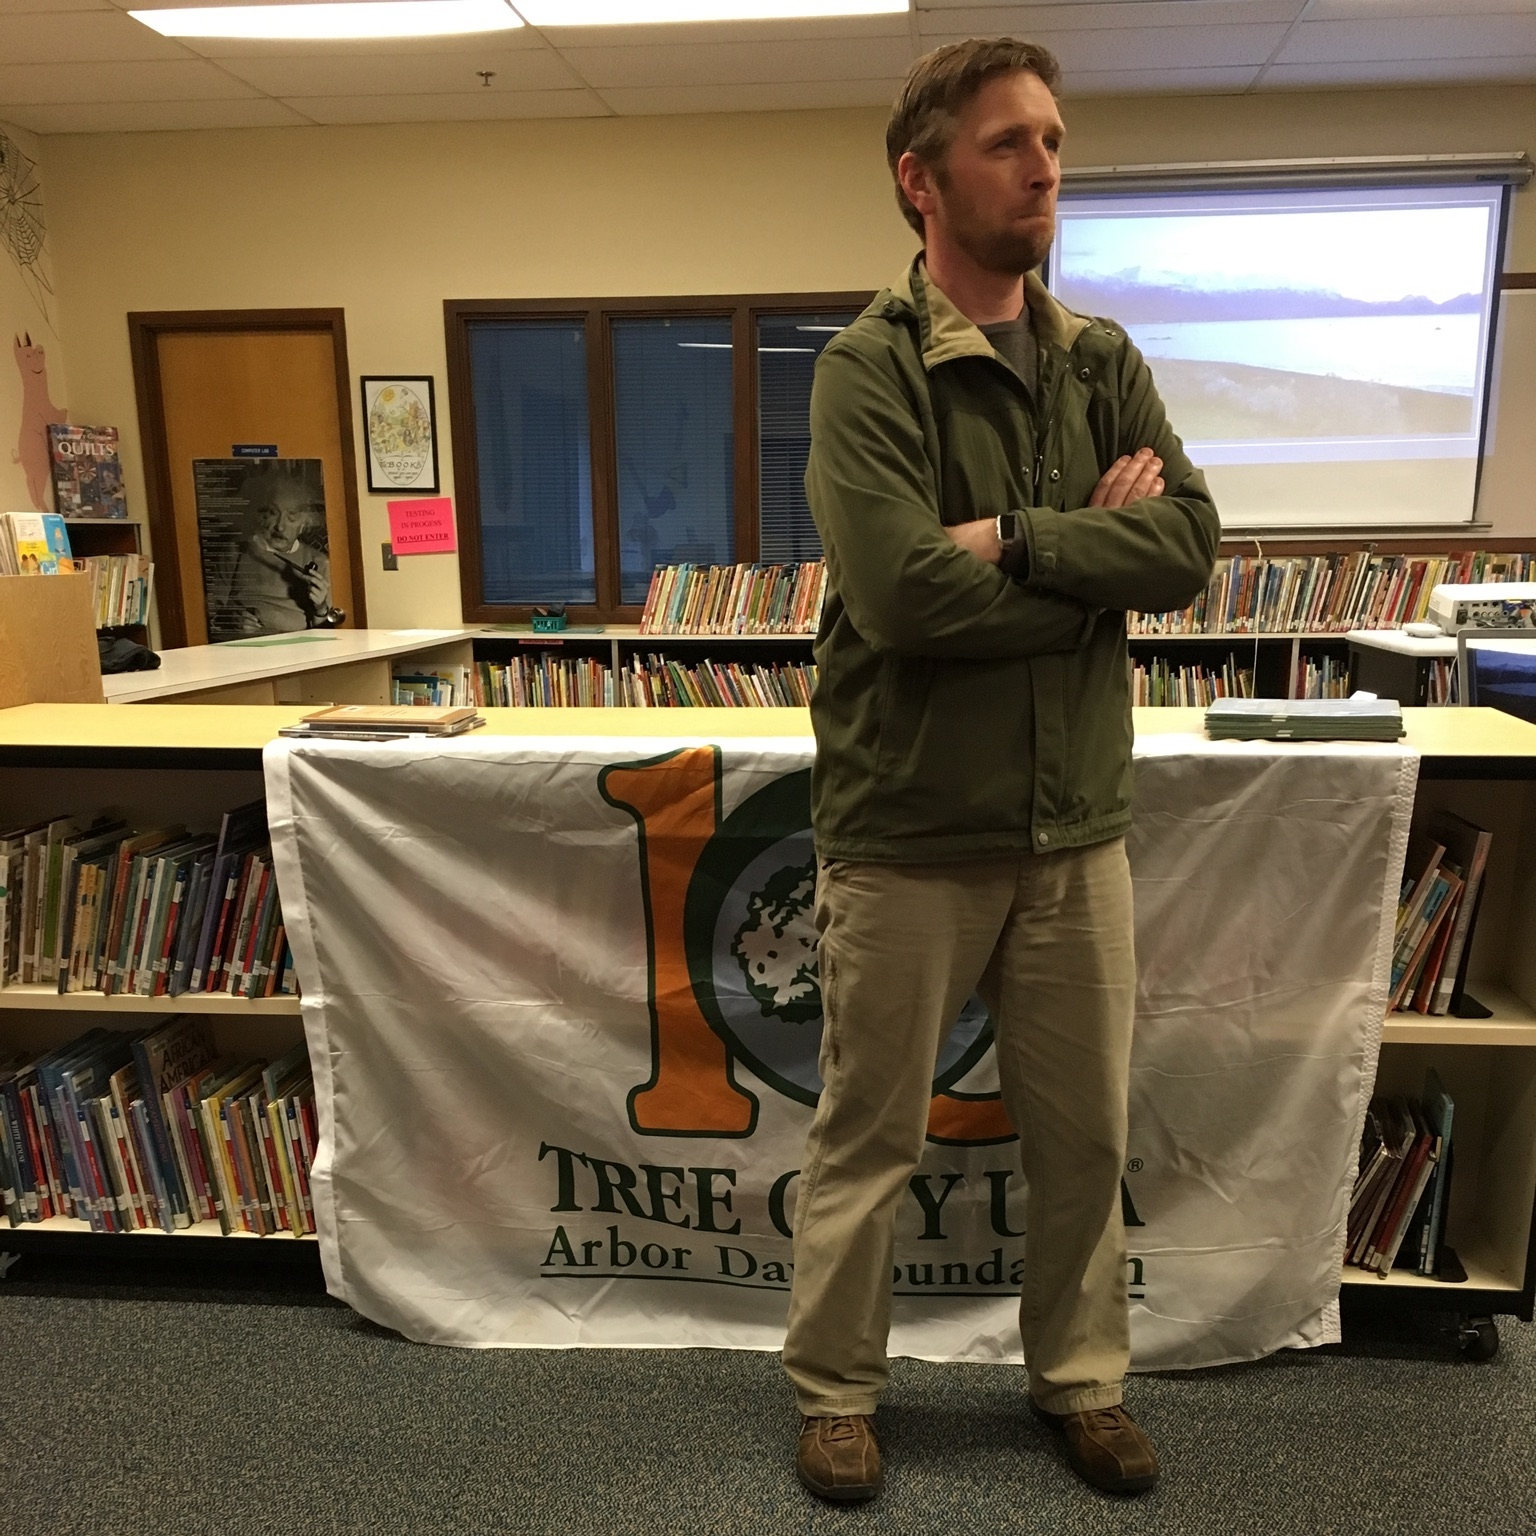 Seth Menser, Land Stewardship Supervisor for Portland Parks, spoke at the Arbor Month Celebration and City Council Meeting on April 10, 2017. Menser gave a fascinating presentation about his work and travels as a horticulture supervisor .